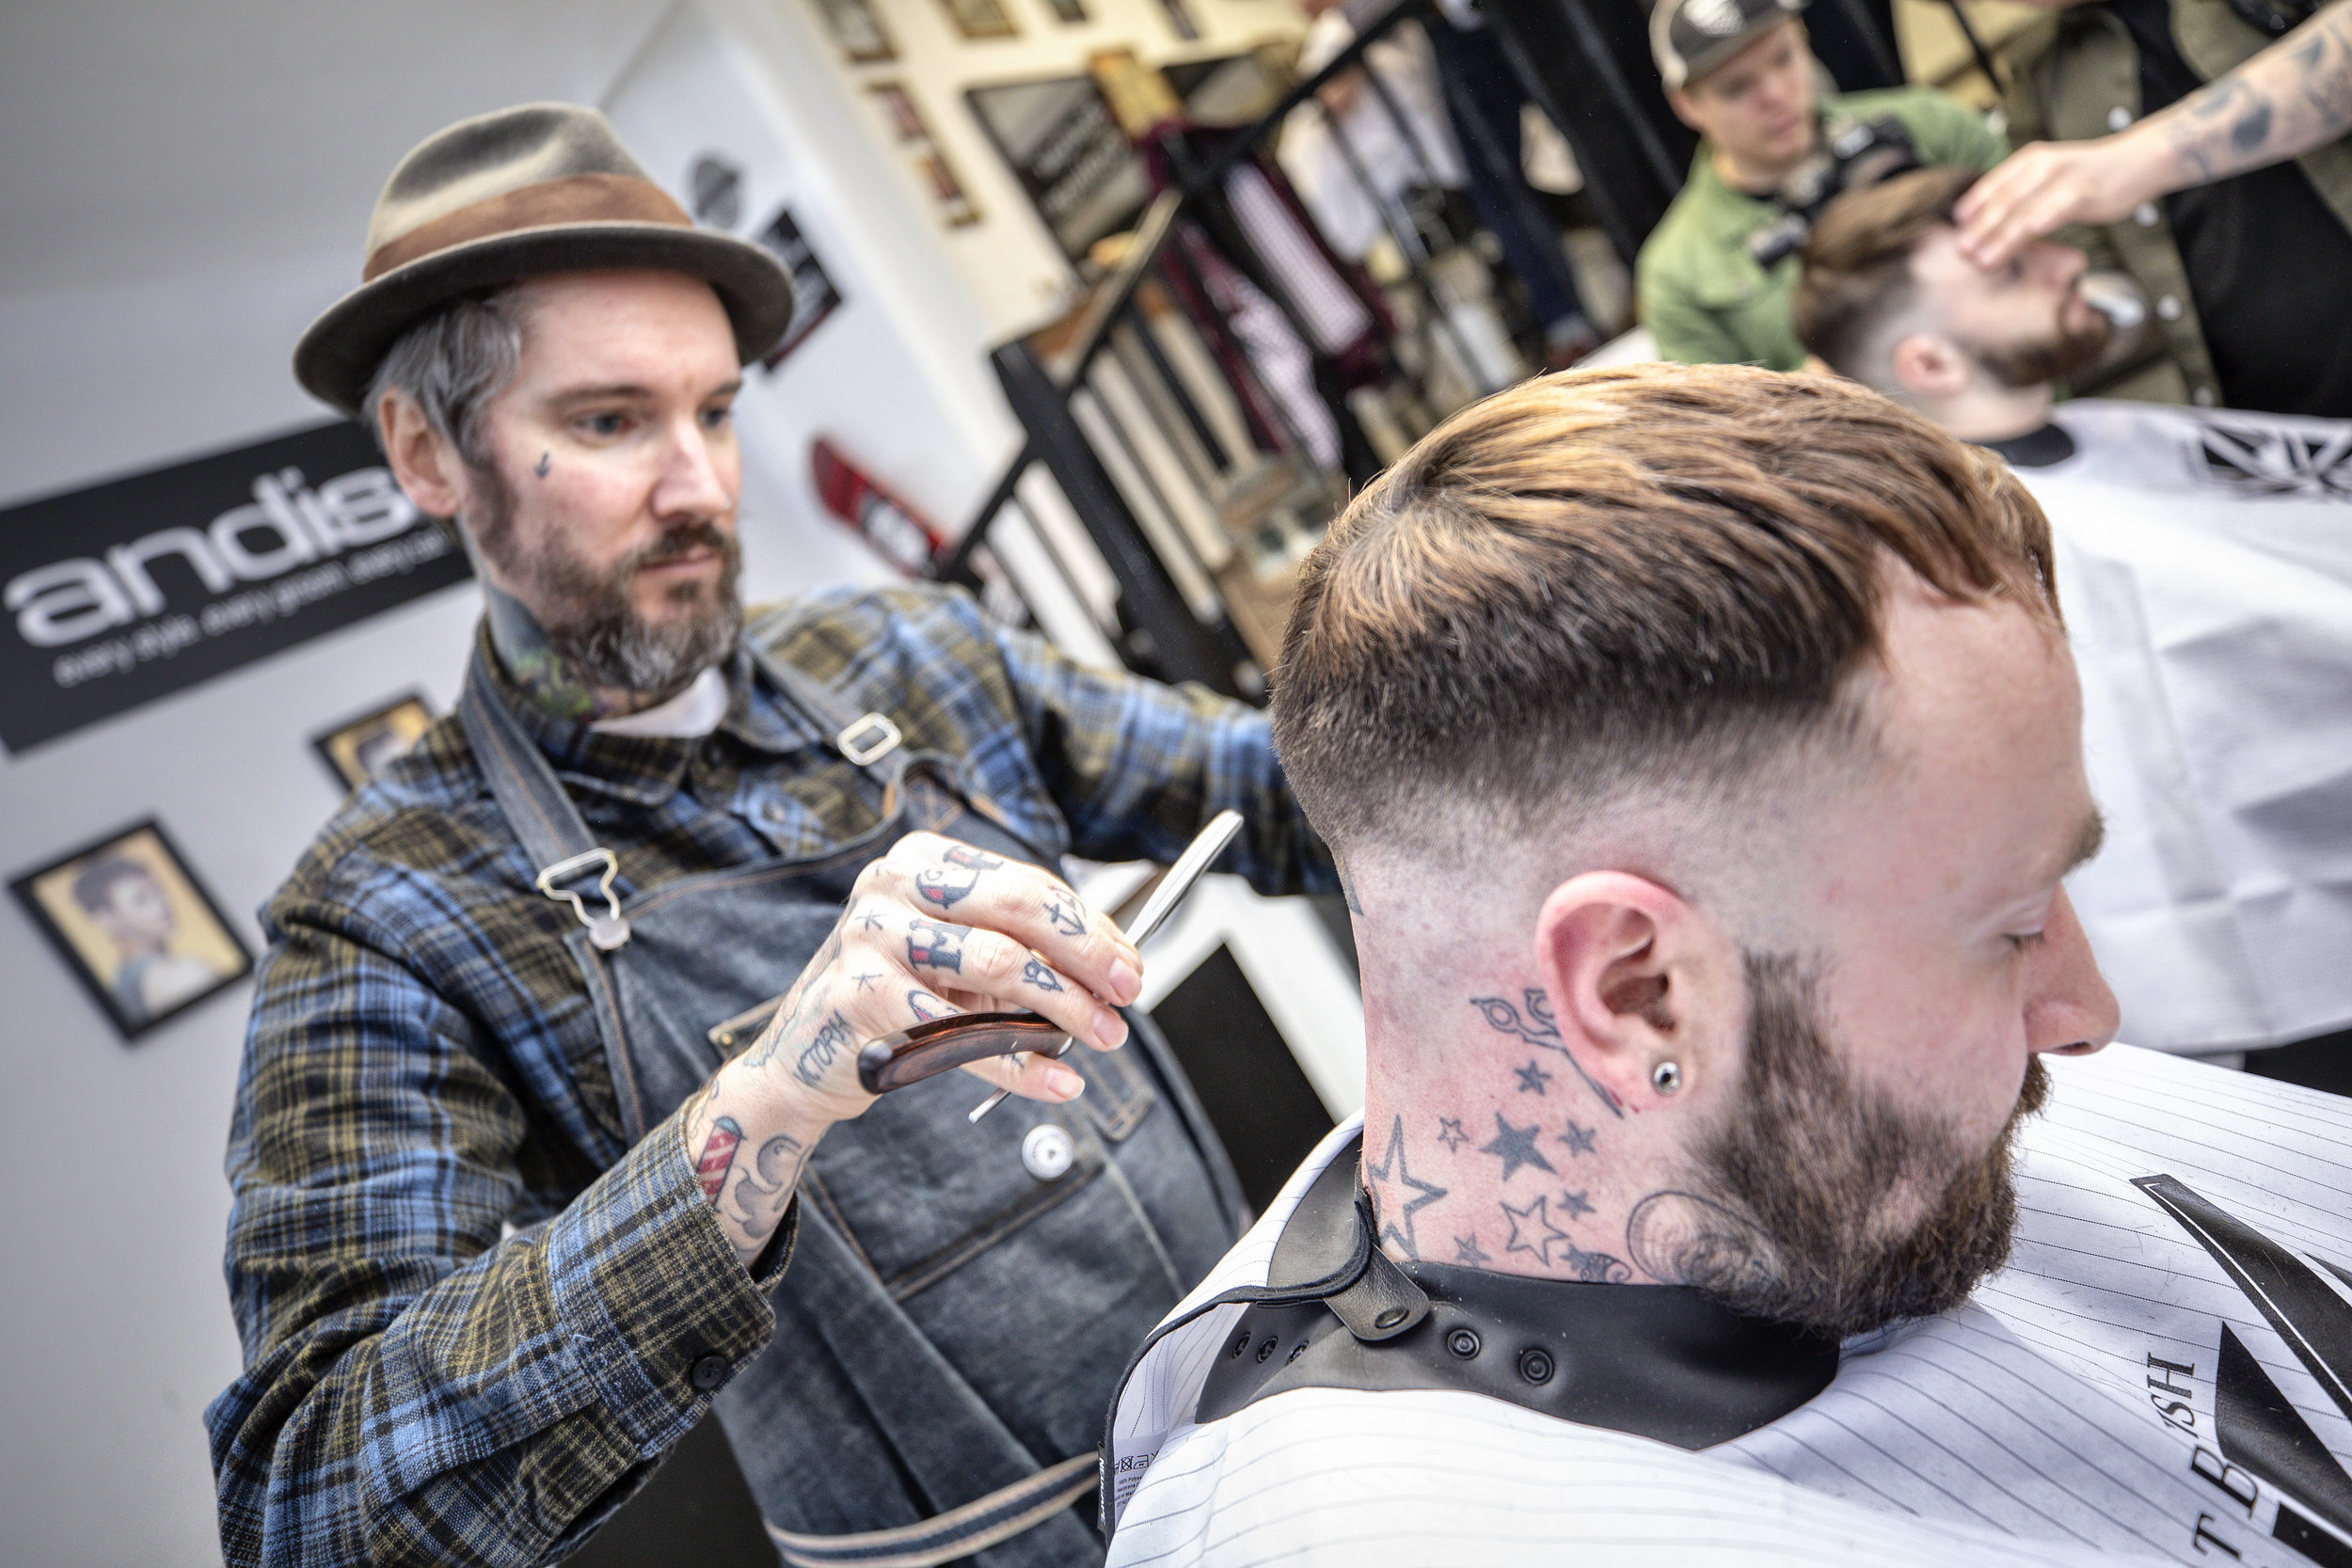 VTCT NVQ Level 2 in Barbering - This course is suitable for complete beginners and hairdressers looking to improve their barbering skills